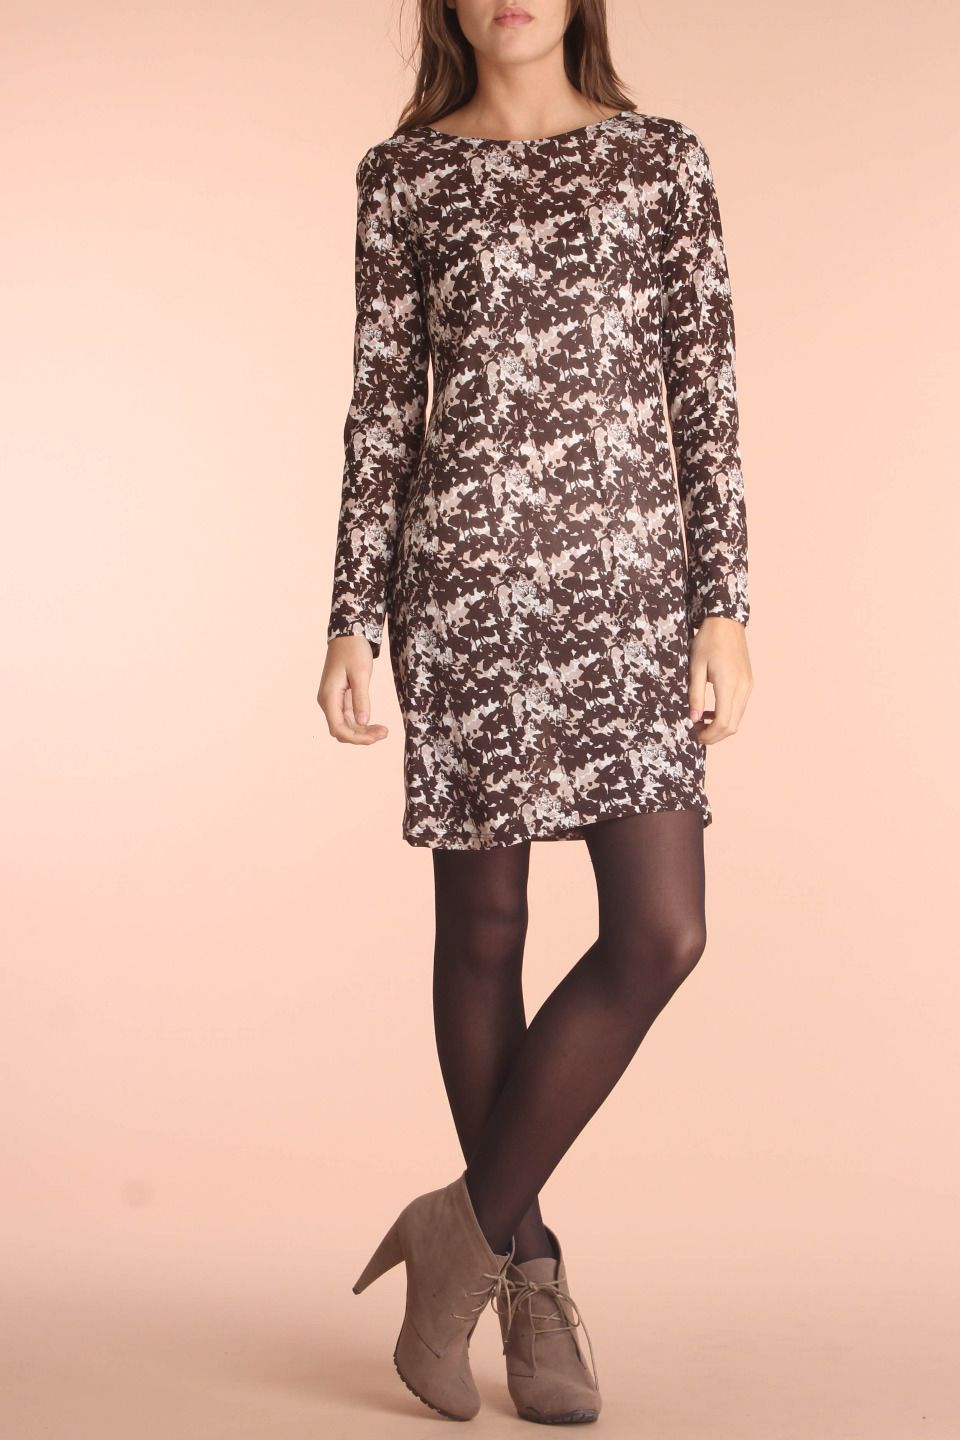 Great Fall Dress To Pair With S